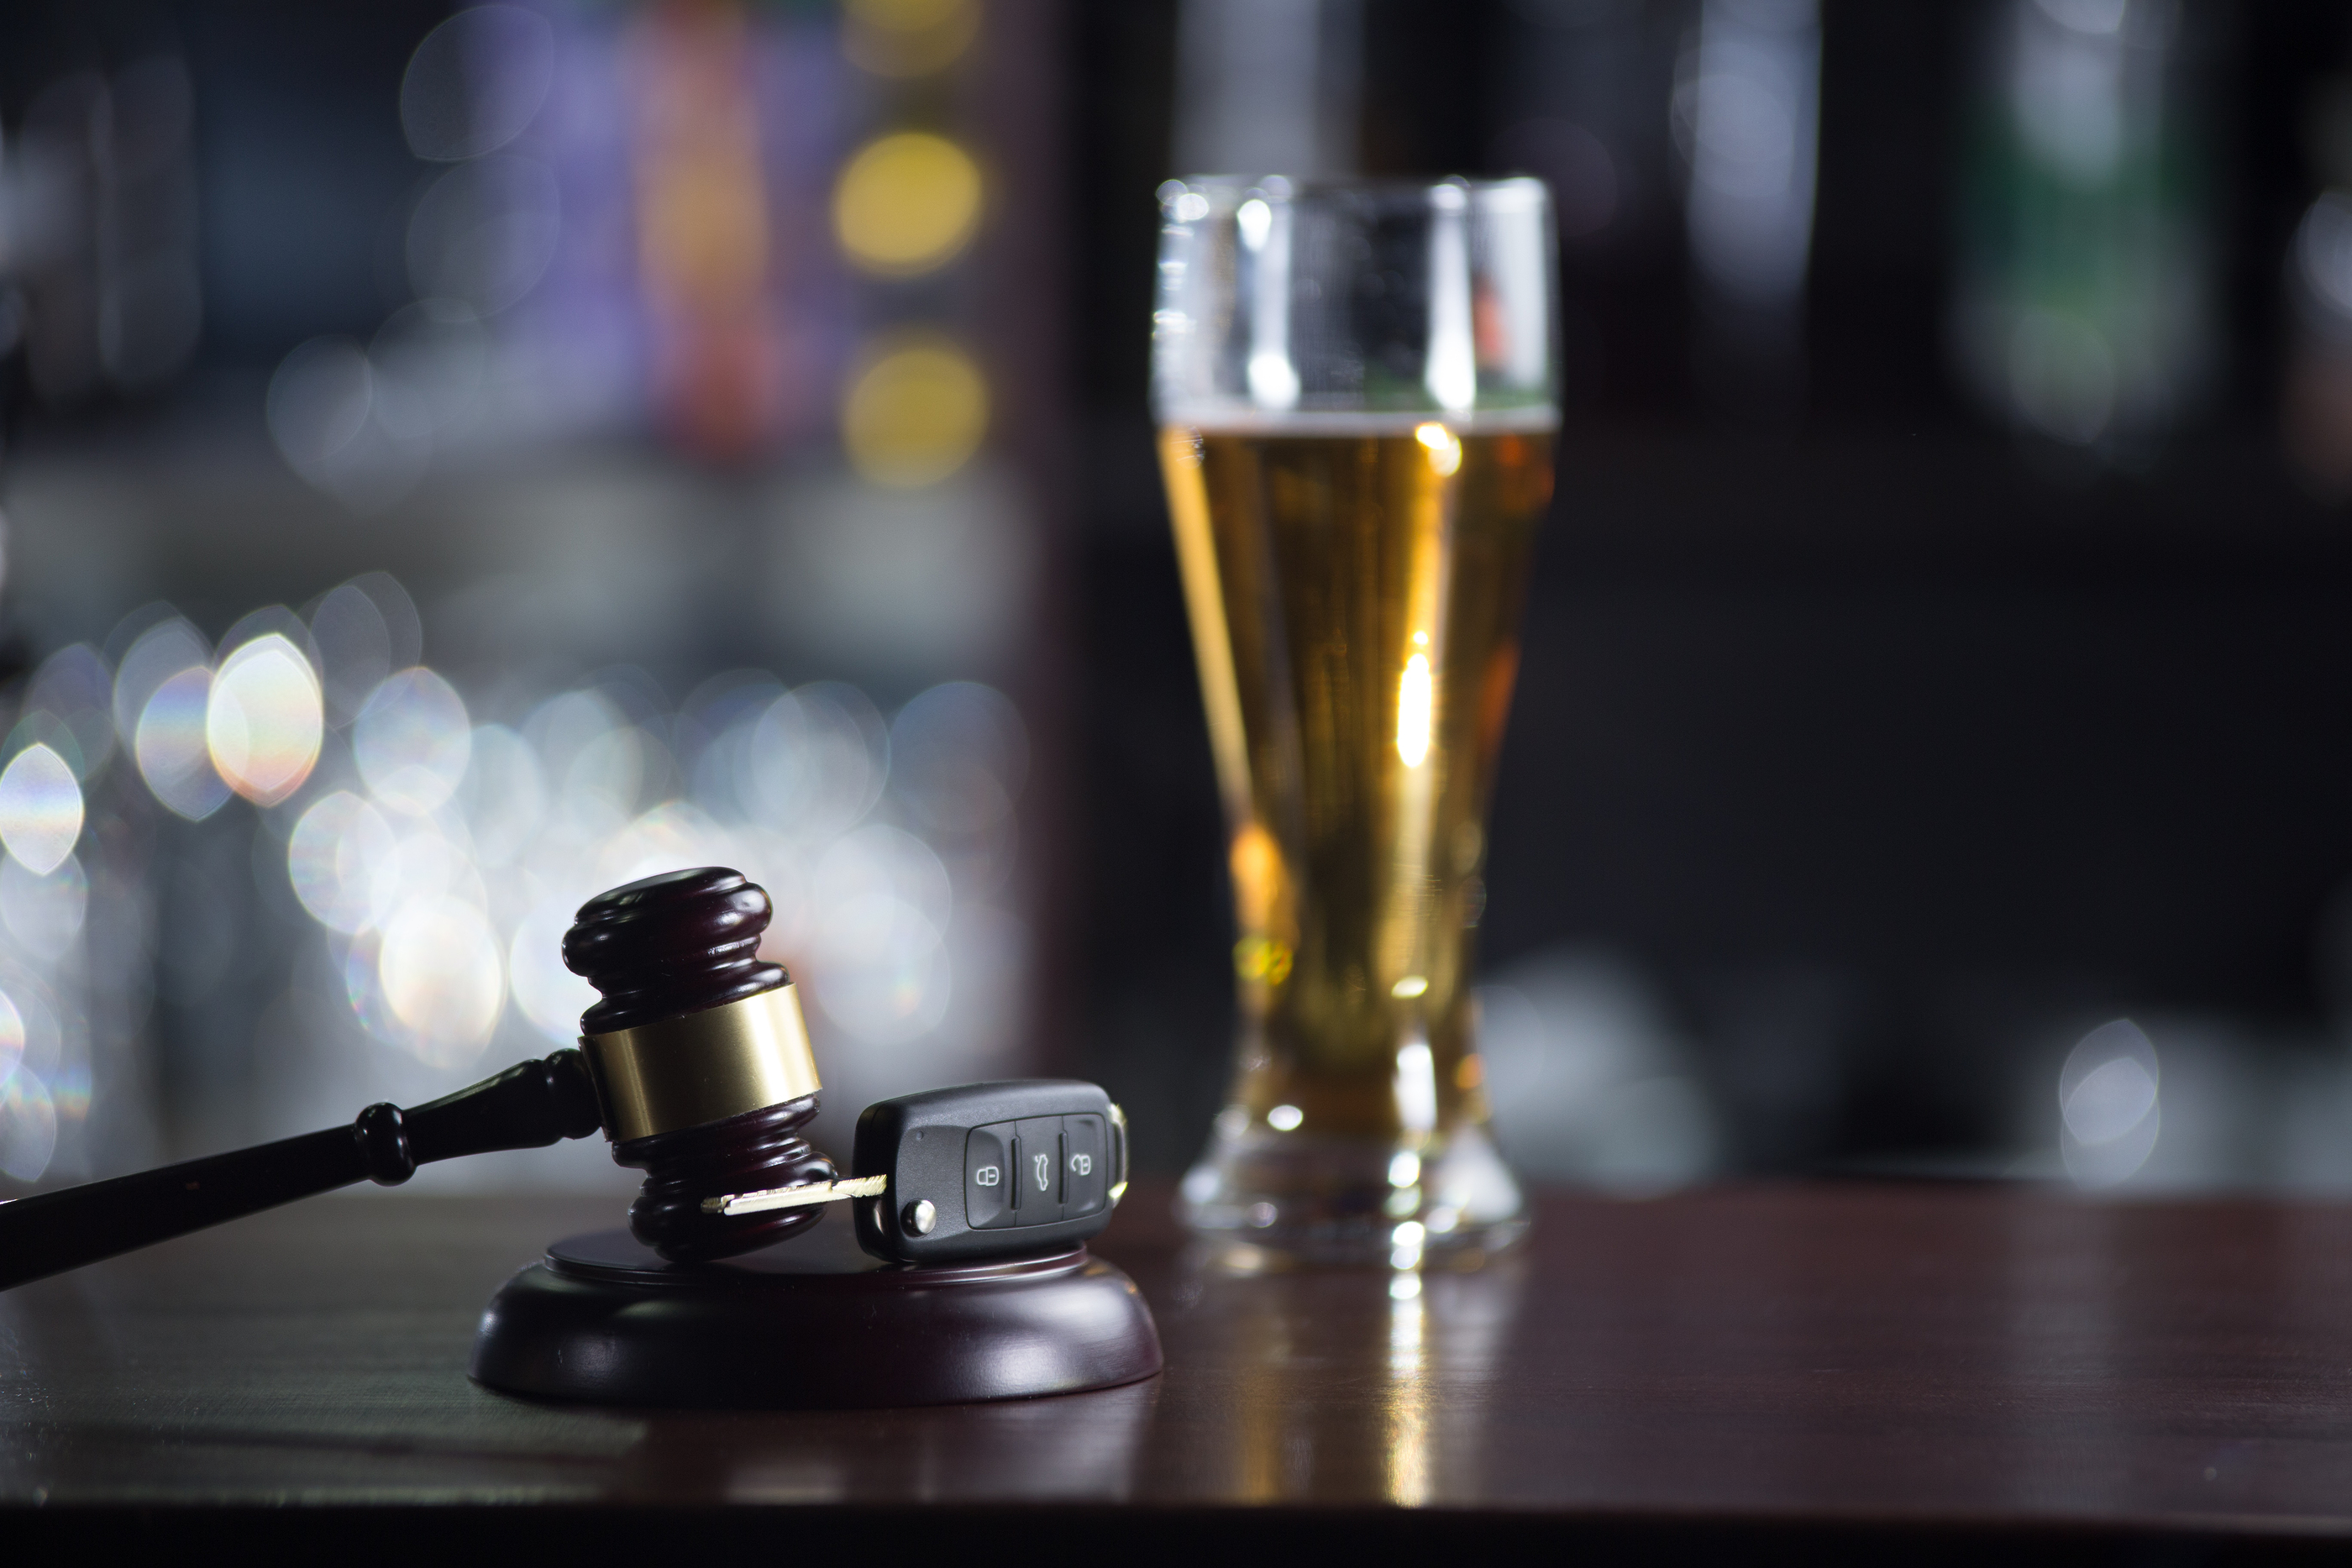 Denver Criminal Defense Attorney, Denver DUI Attorney and Denver Car Accident Attorney Denver DUI Defense with Jared Benson - DUI